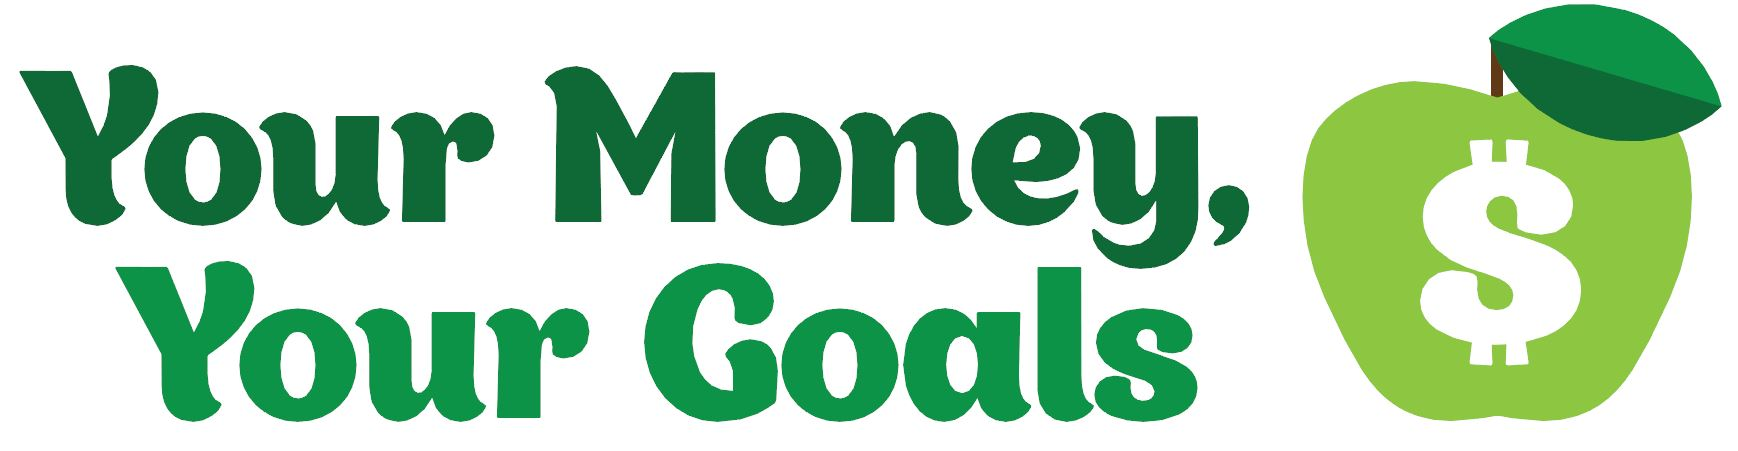 Your Money, Your Goals